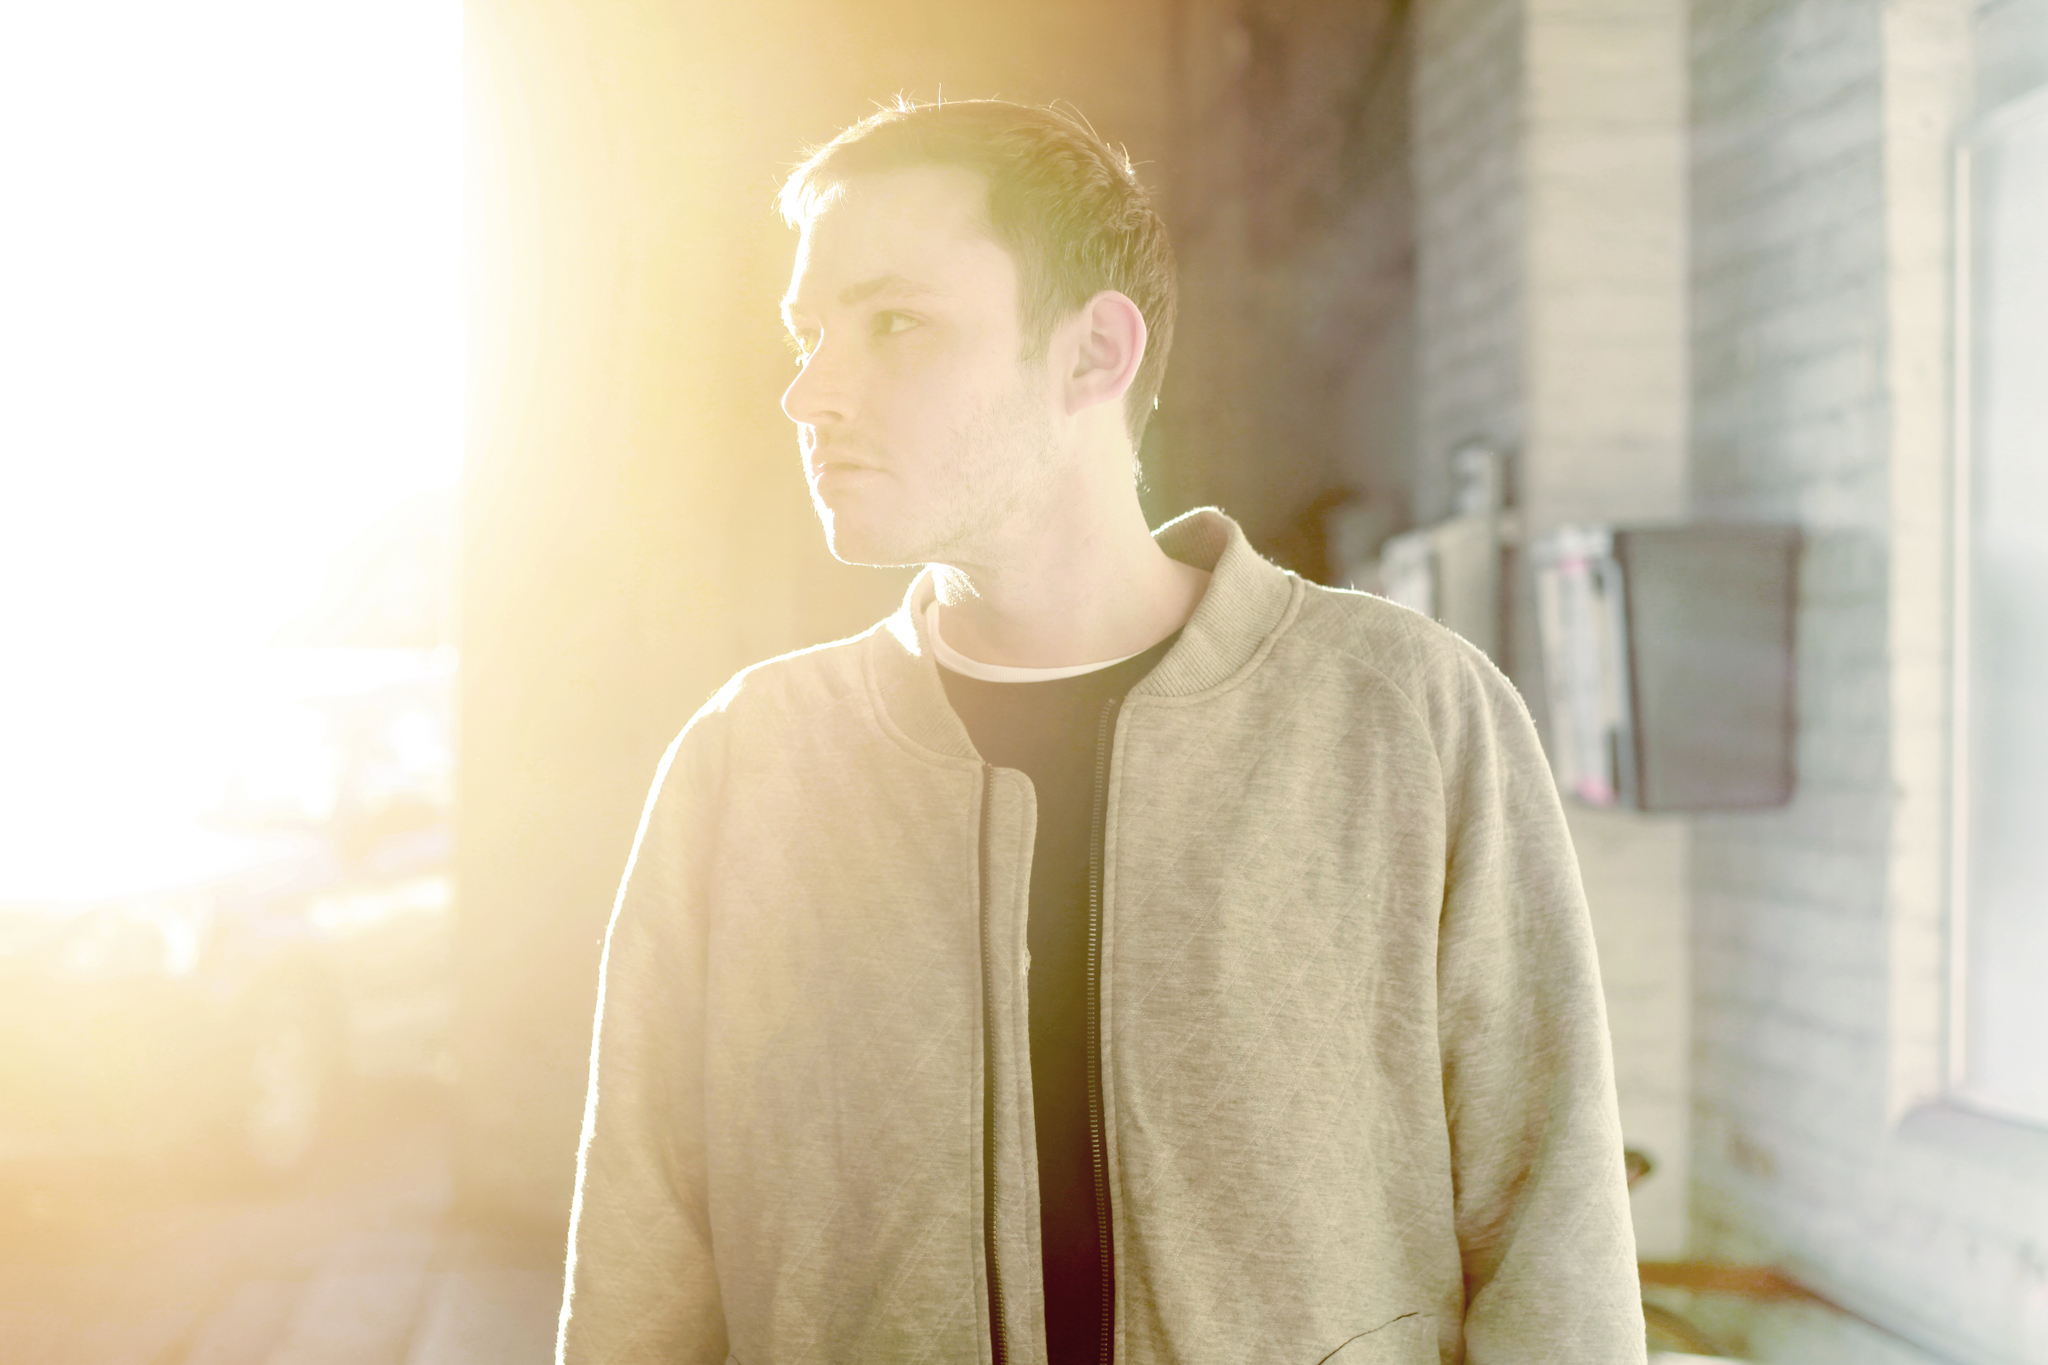 Hudson Mohawke on Kanye, the paparazzi and his new solo record